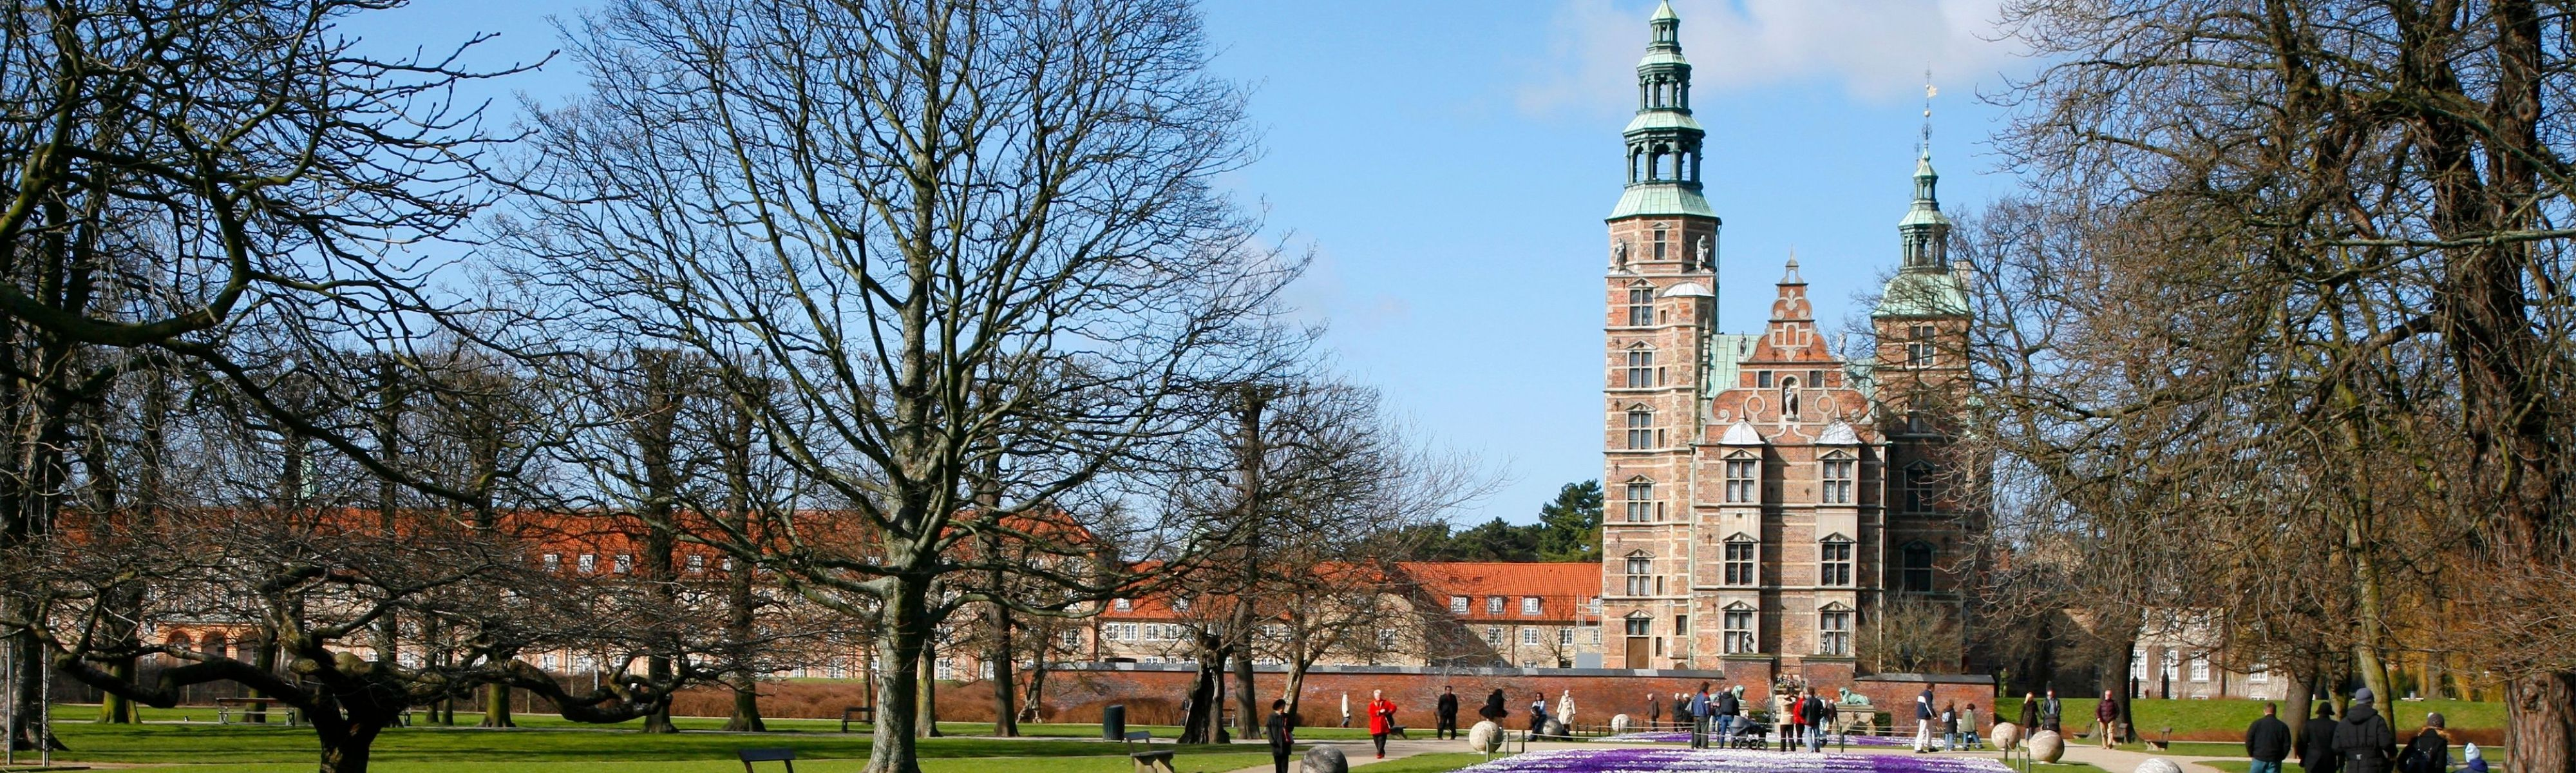 people walking around at rosenborg castle in the spring in copenhagen